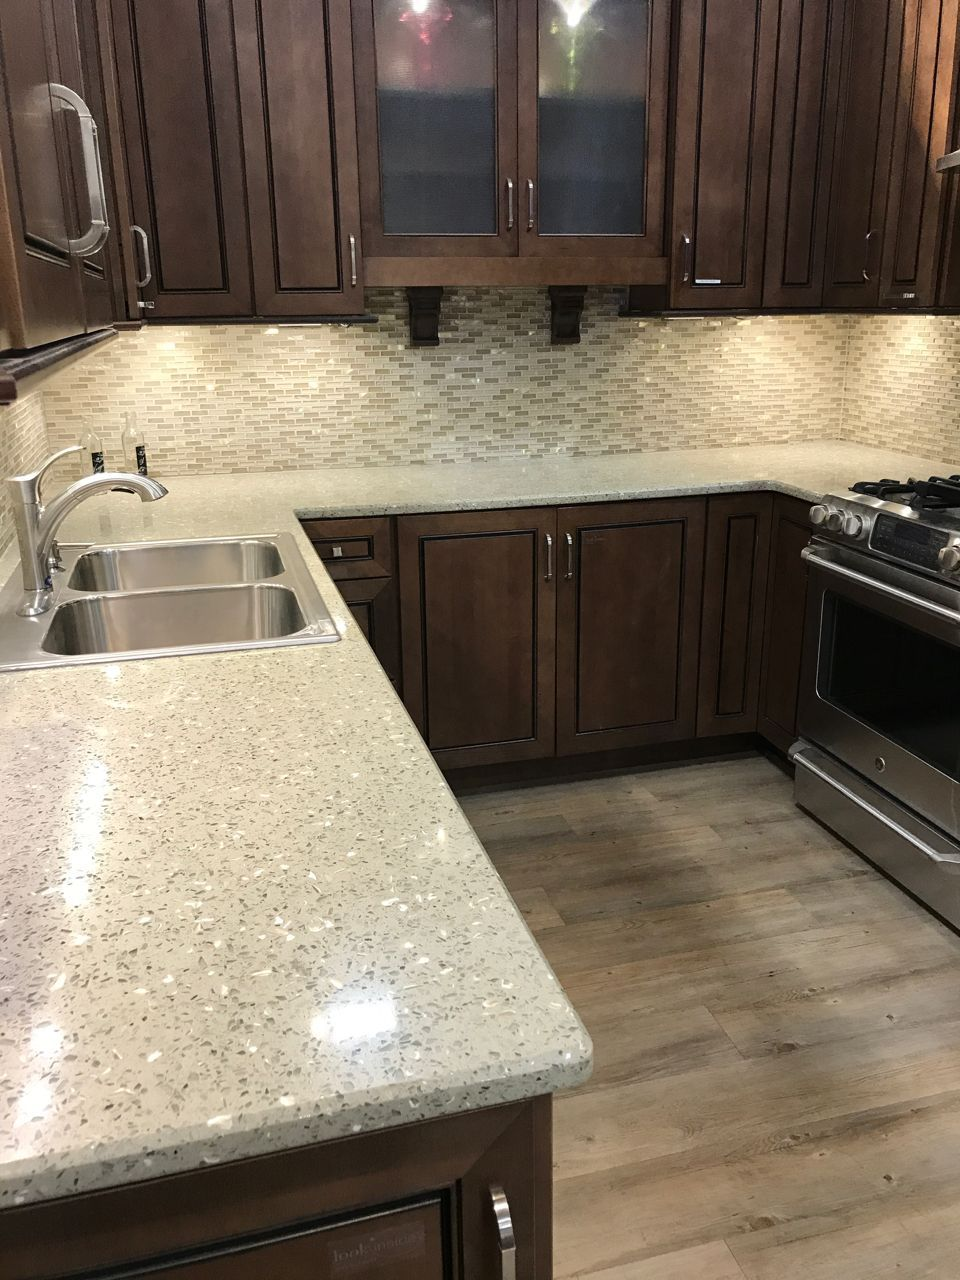 Our Musk Green Lemongrass Surface Was Designed With Seashells To Parallel The Wide Varieties Of Uses Glass Countertops Recycled Glass Countertops Glass Kitchen